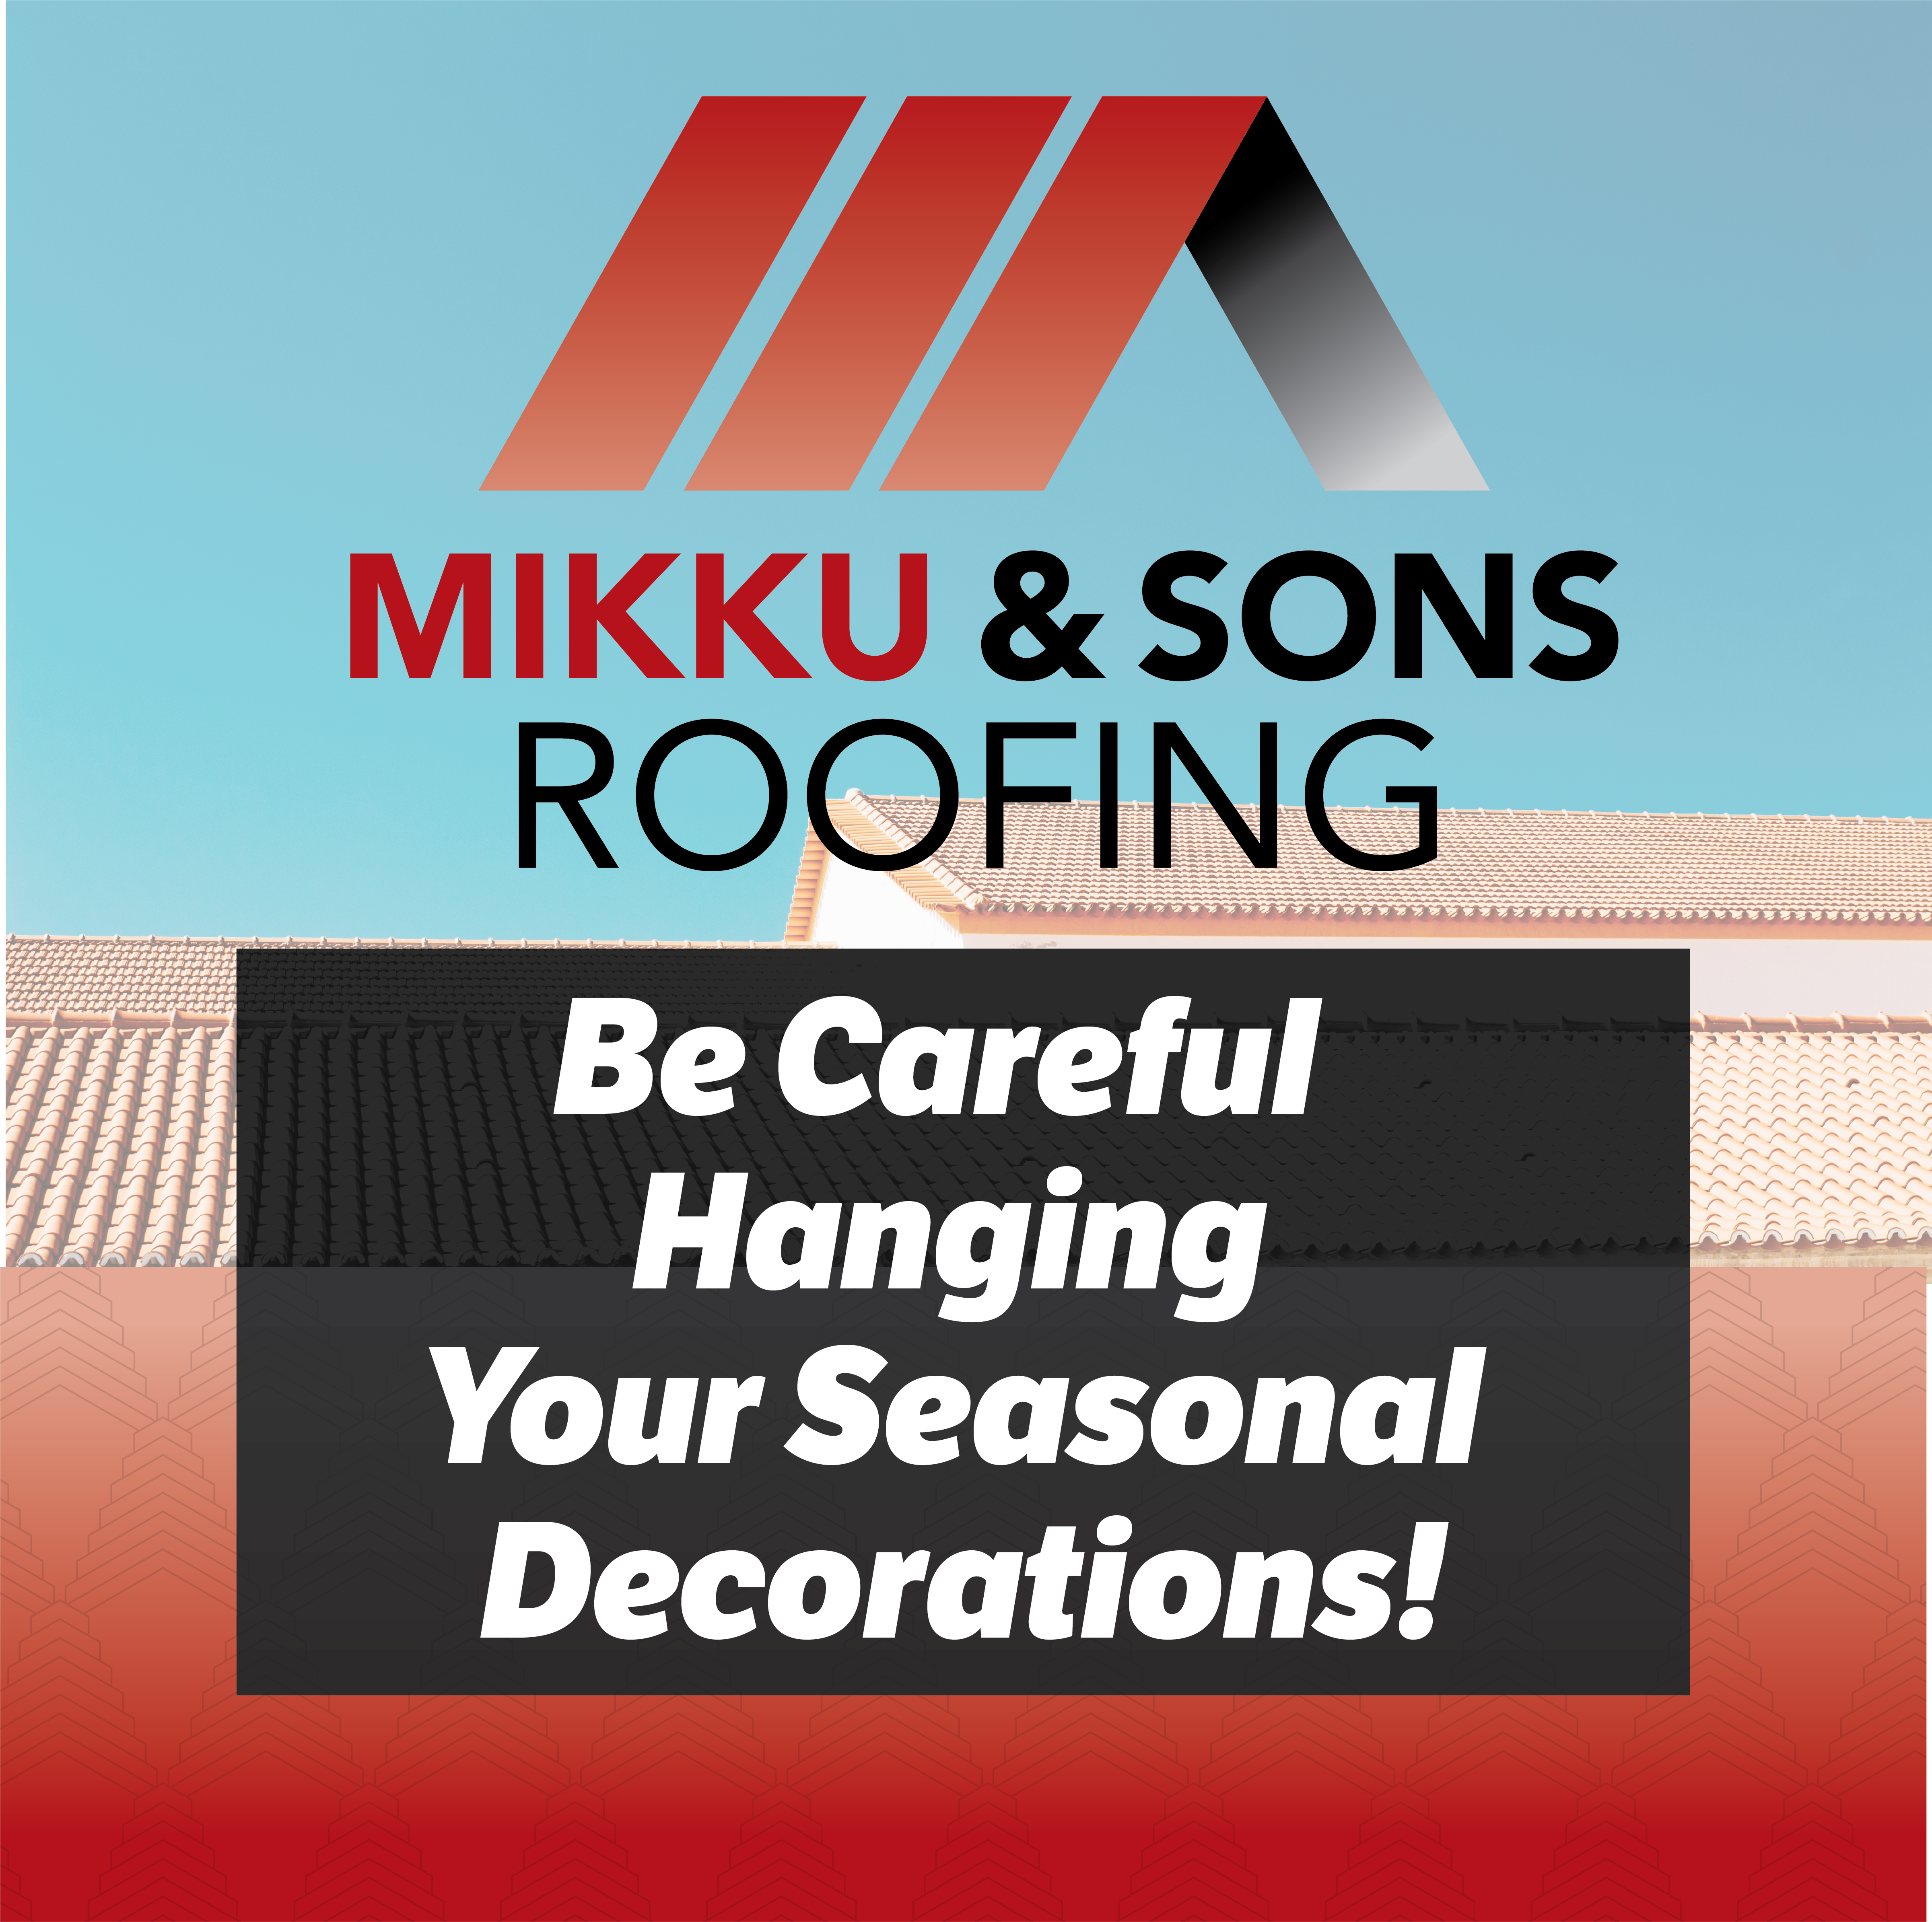 Be Careful Hanging Your Seasonal Decorations!